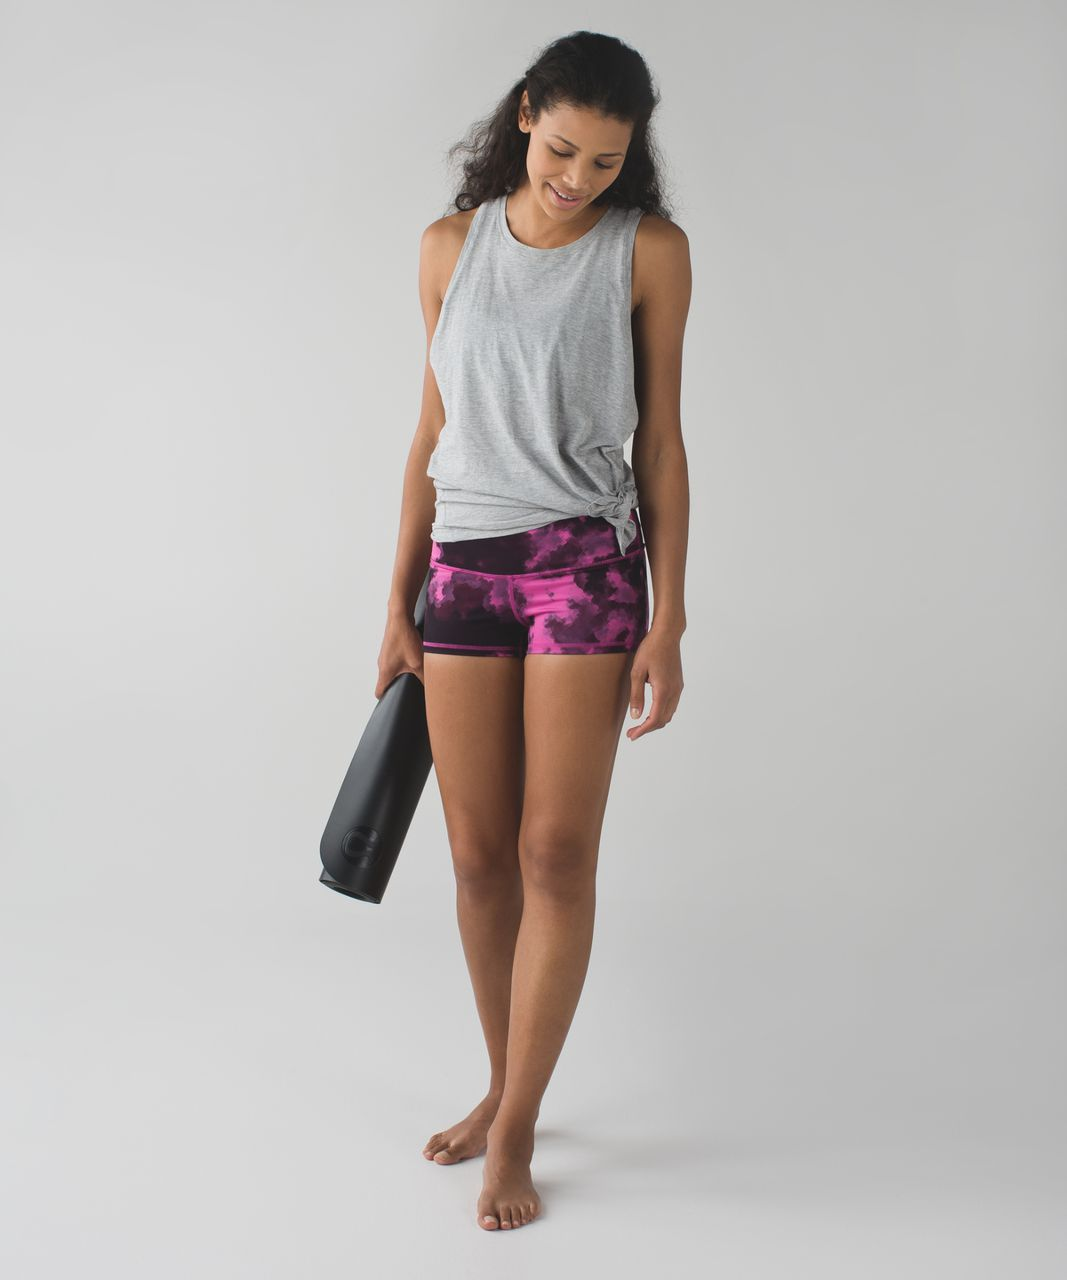 Lululemon Boogie Short (Roll Down) *Full-On Luon - Blooming Pixie Raspberry Black